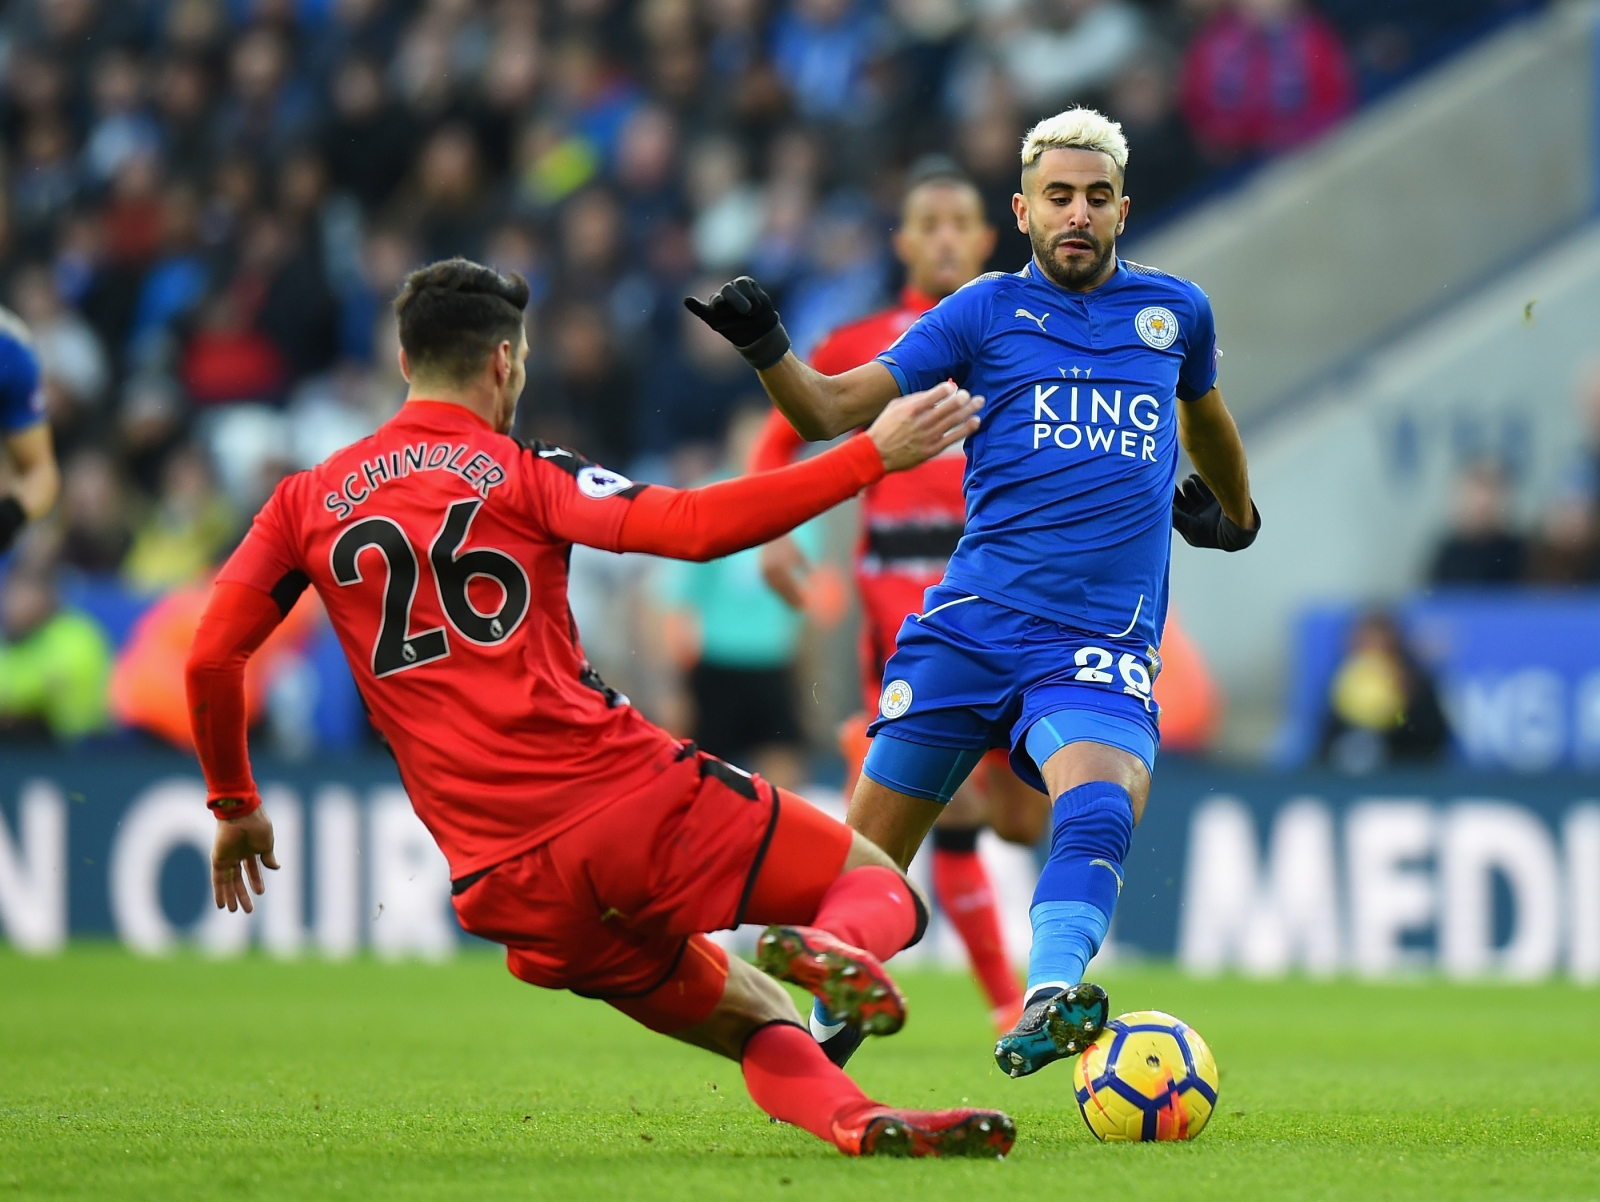 Michael Owen comments on Riyad Mahrez to Liverpool speculation